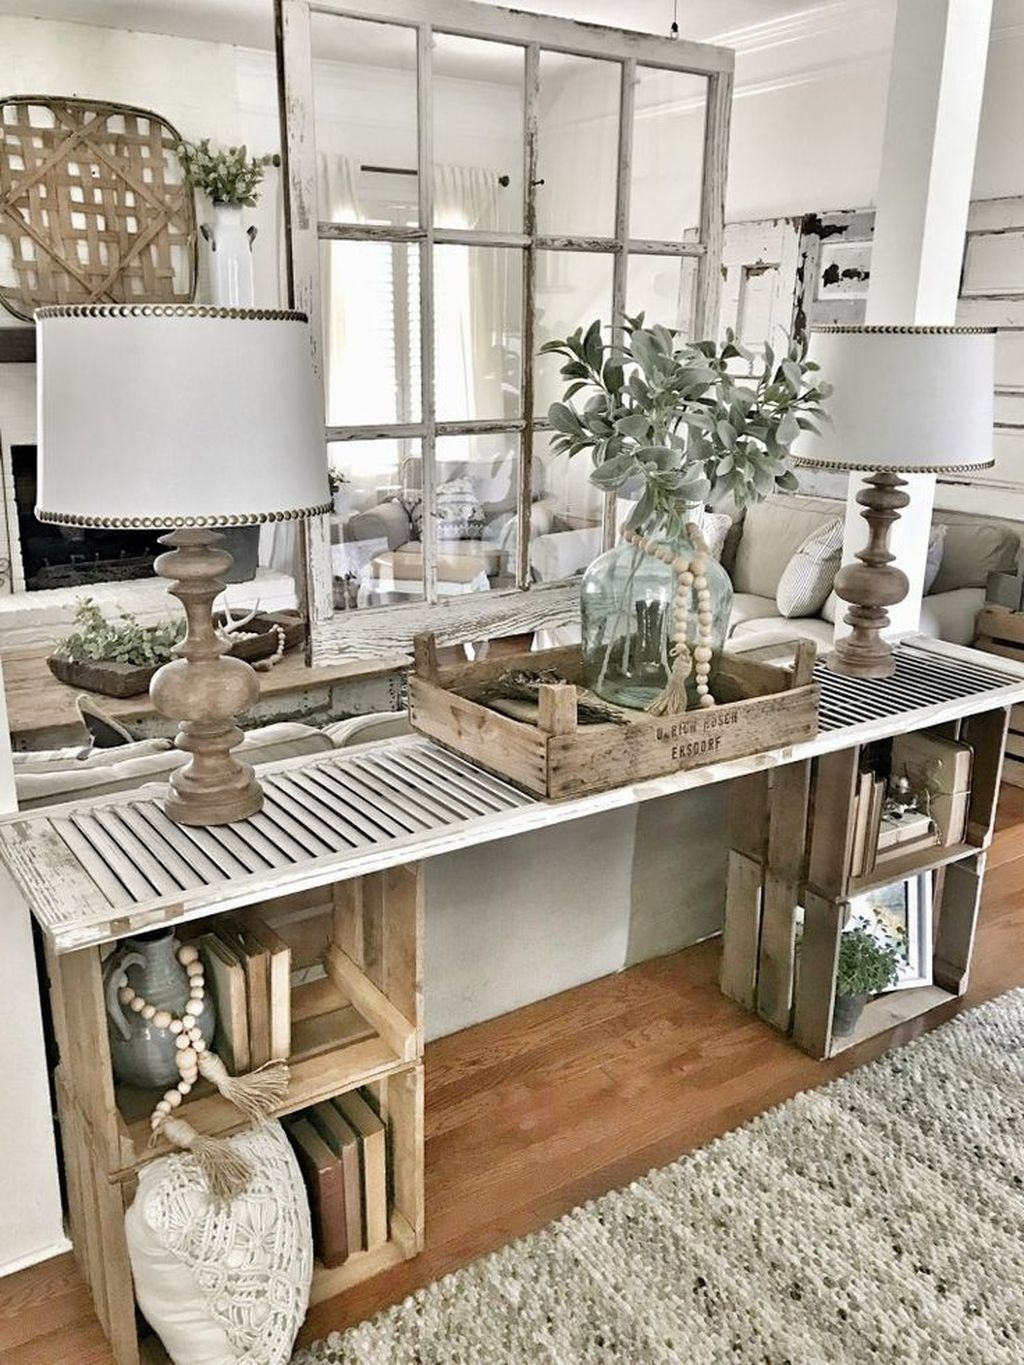 Perfect Apartment Living Room Decor Ideas On A Budget44